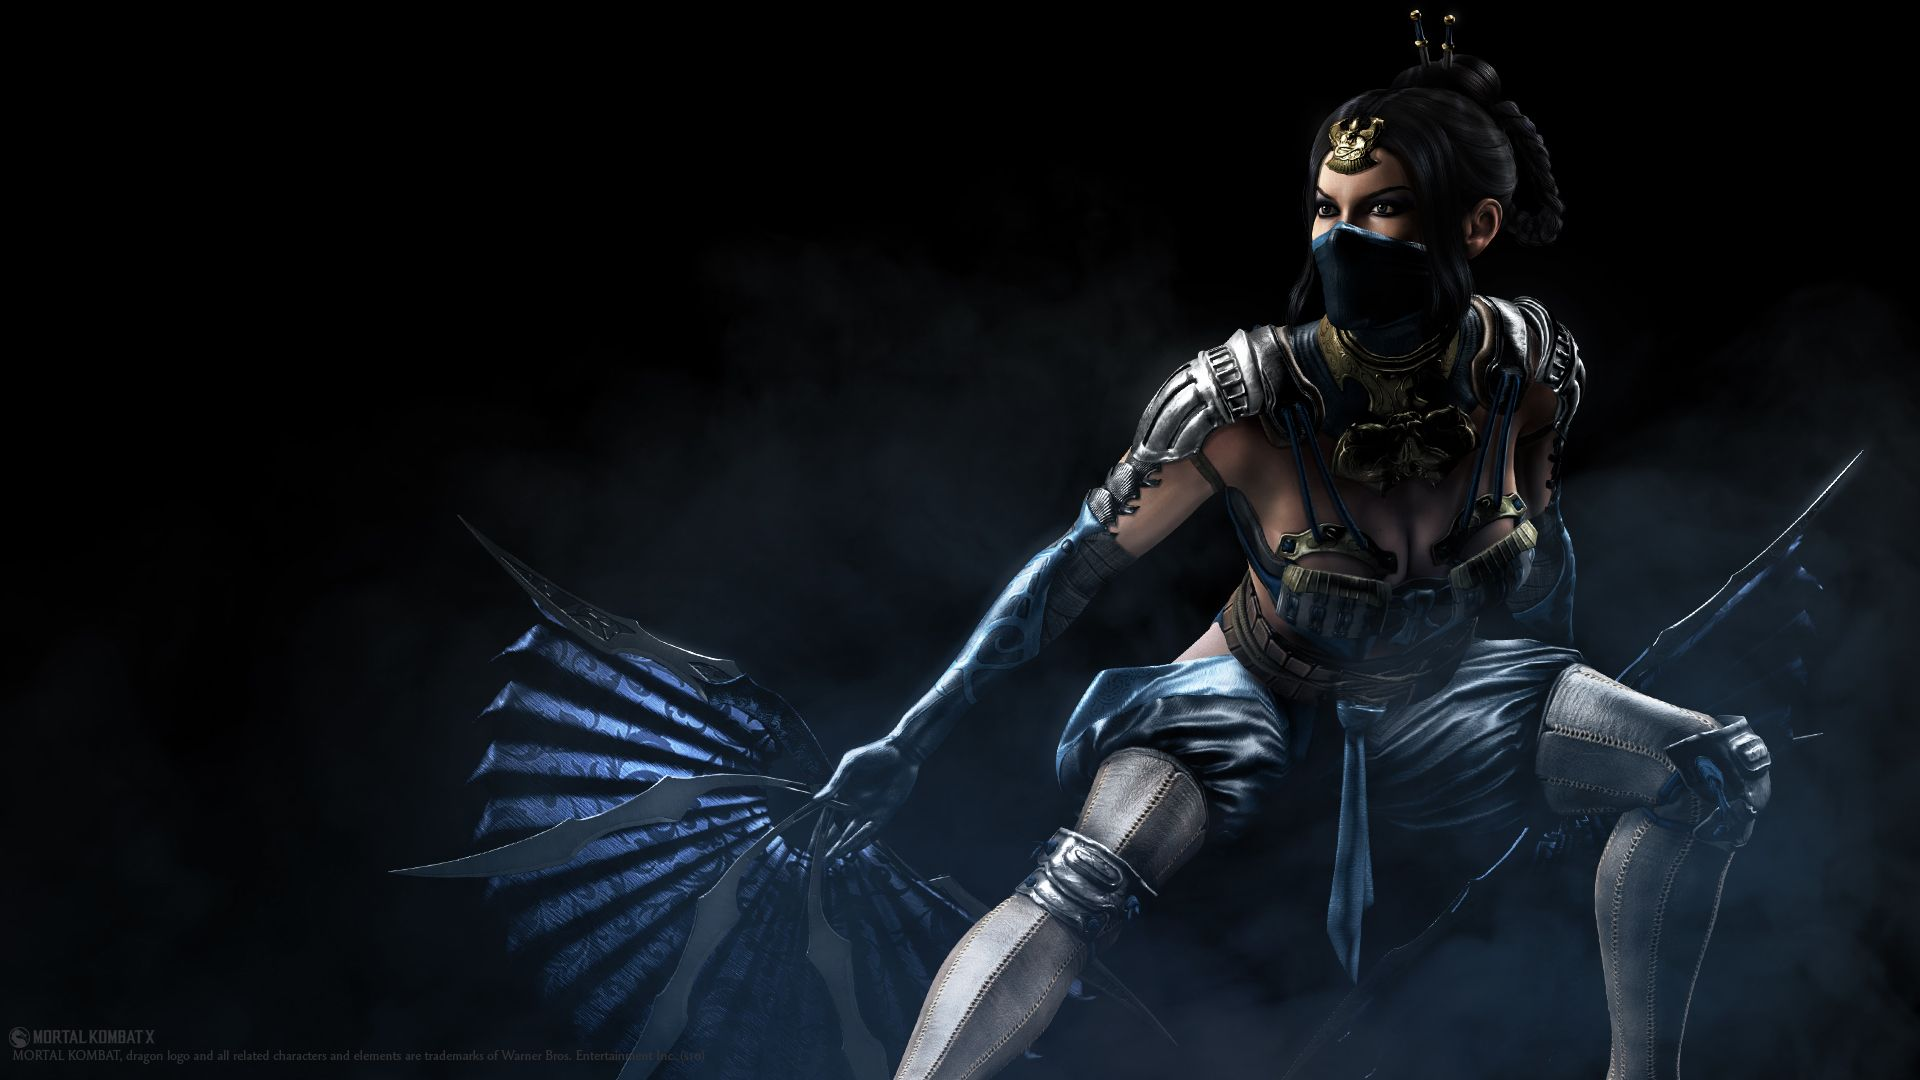 Mortal Kombat X Wallpaper Desktop Background Wyi Mortal Kombat